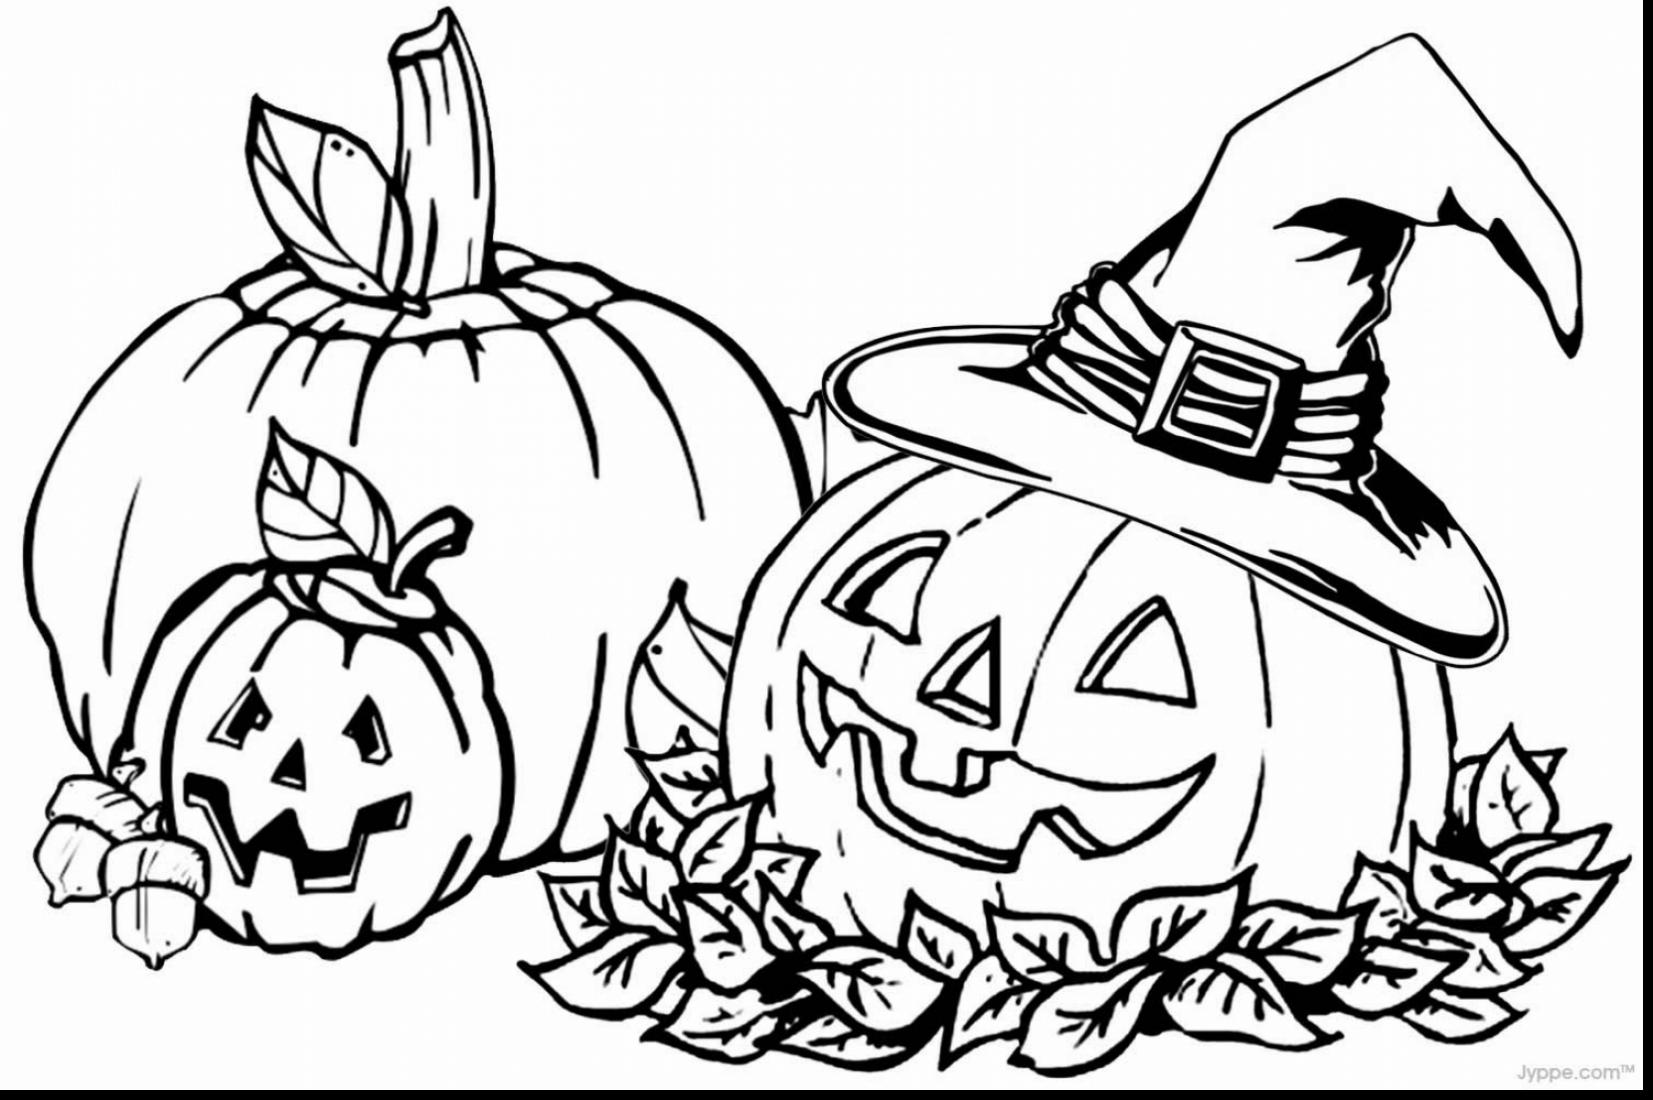 Pumpkin Drawing Pattern at GetDrawings.com | Free for personal use ...